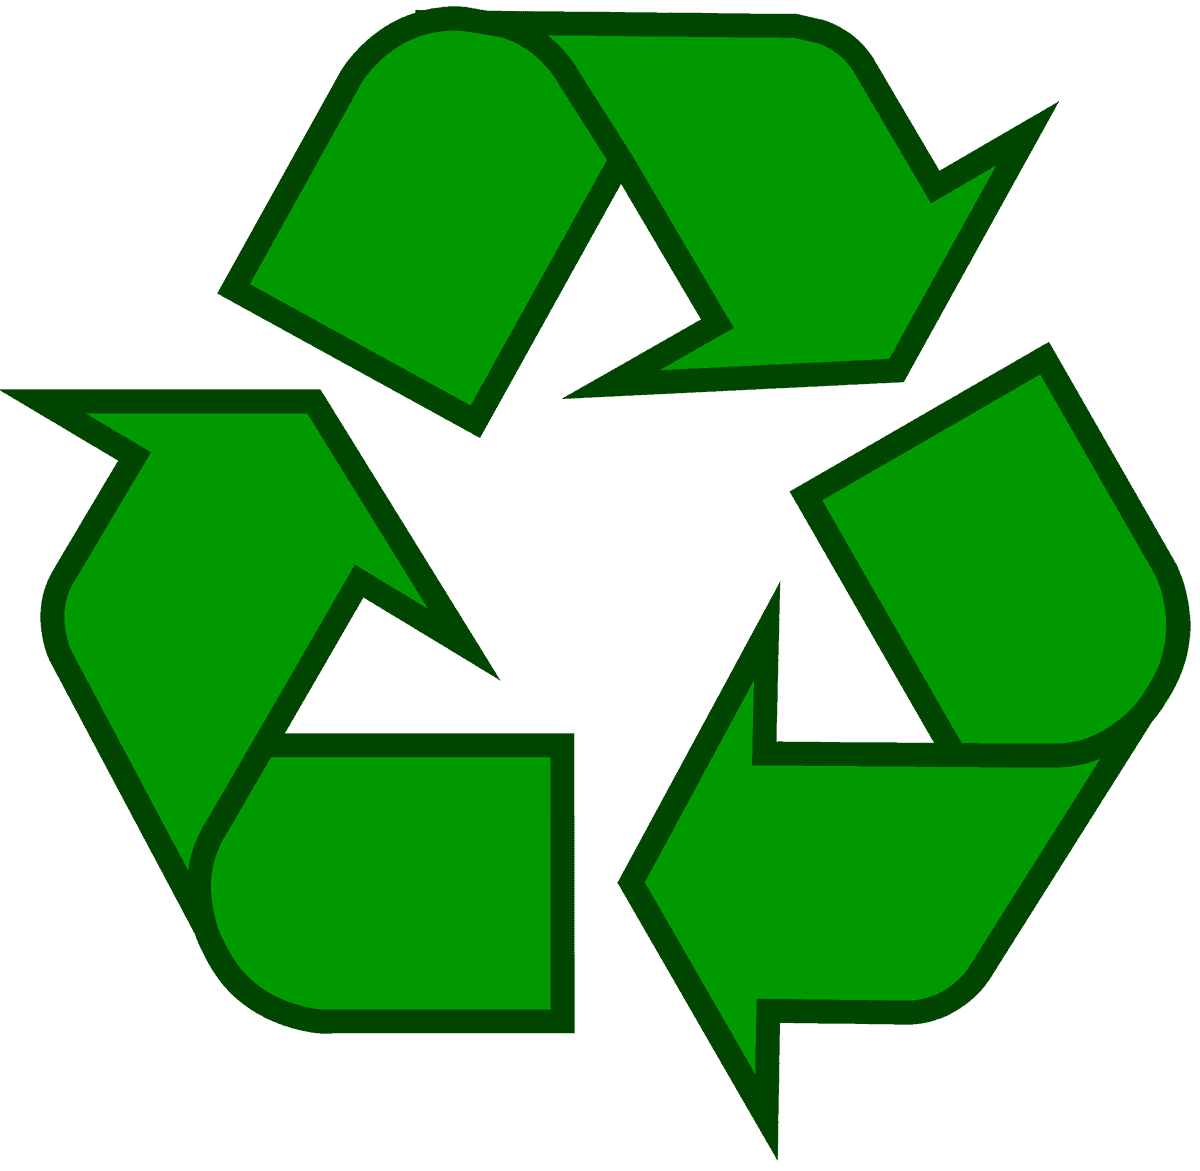 graphic relating to Recycle Sign Printable identify Recycling Emblem - Obtain the First Recycle Emblem